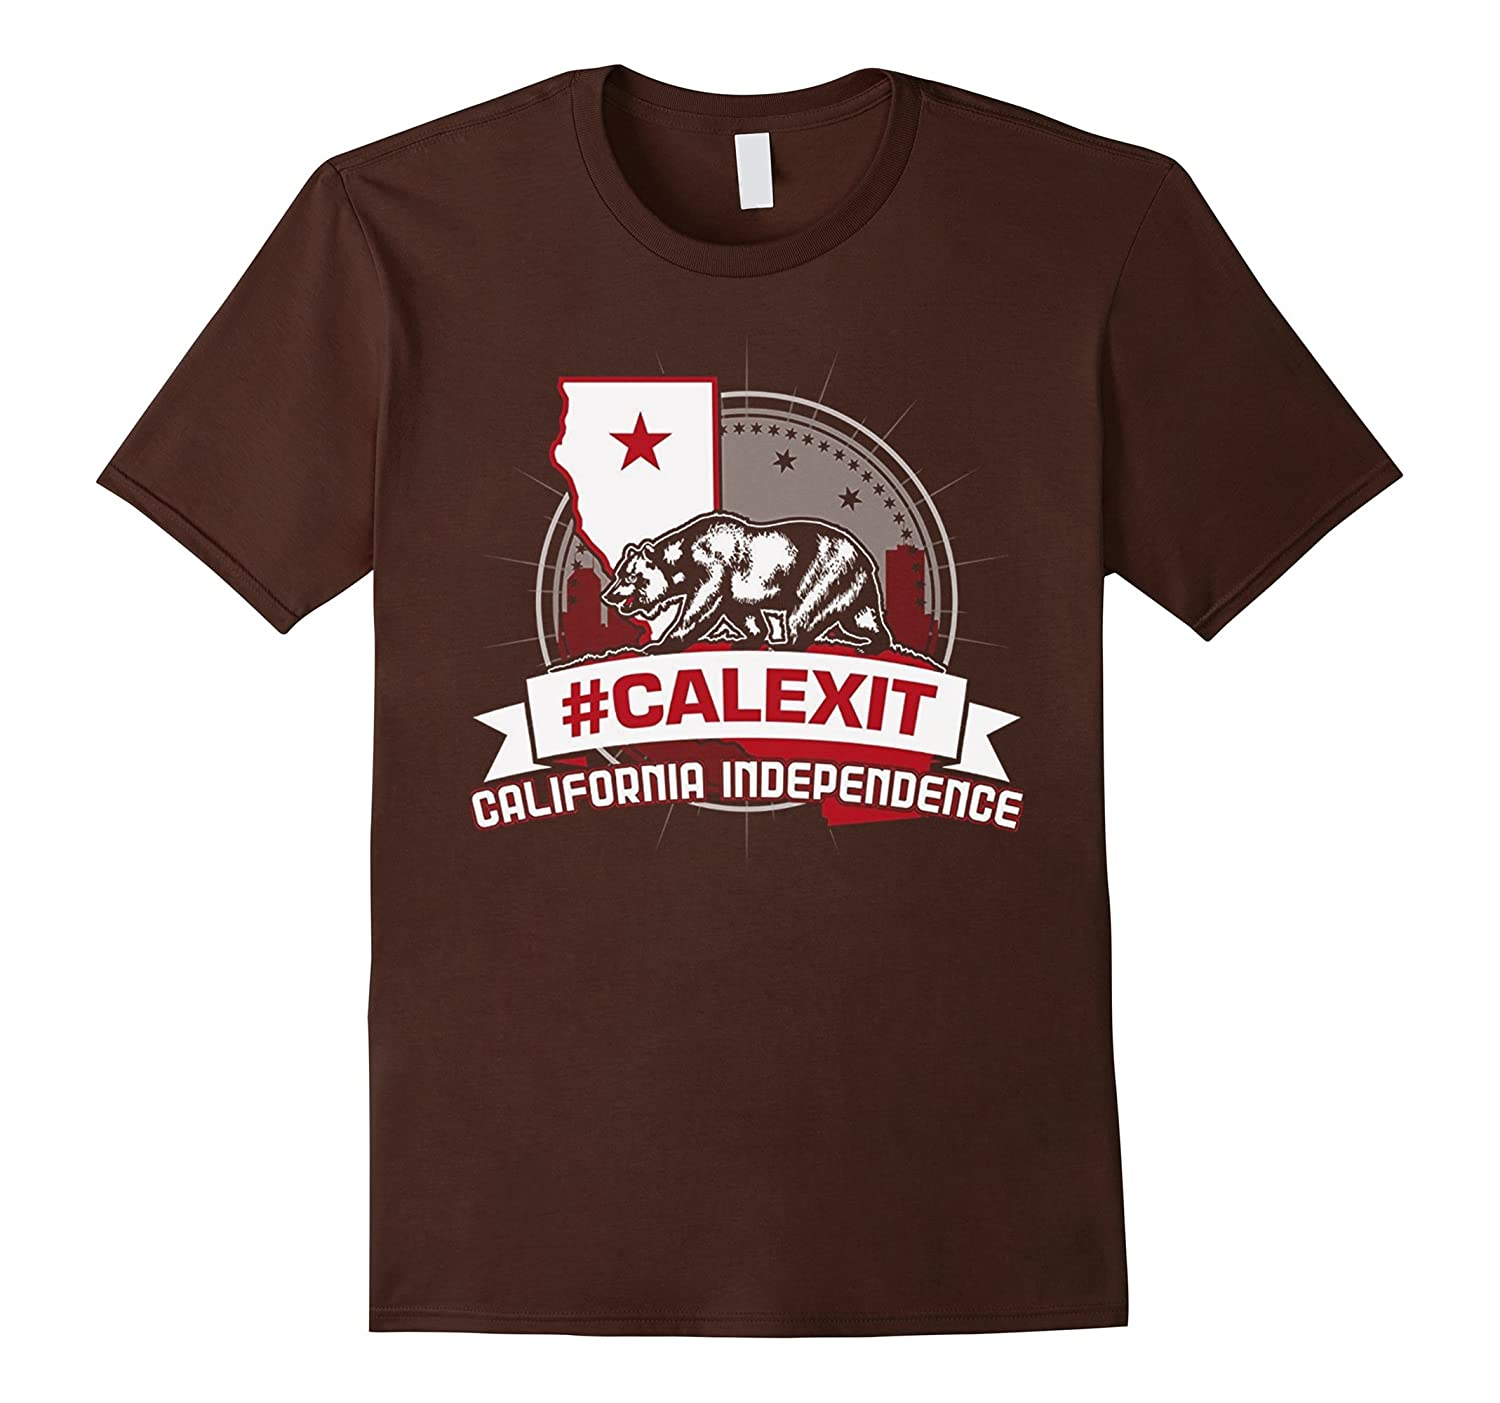 #CALEXIT California independence T-shirts Tshirt-CL